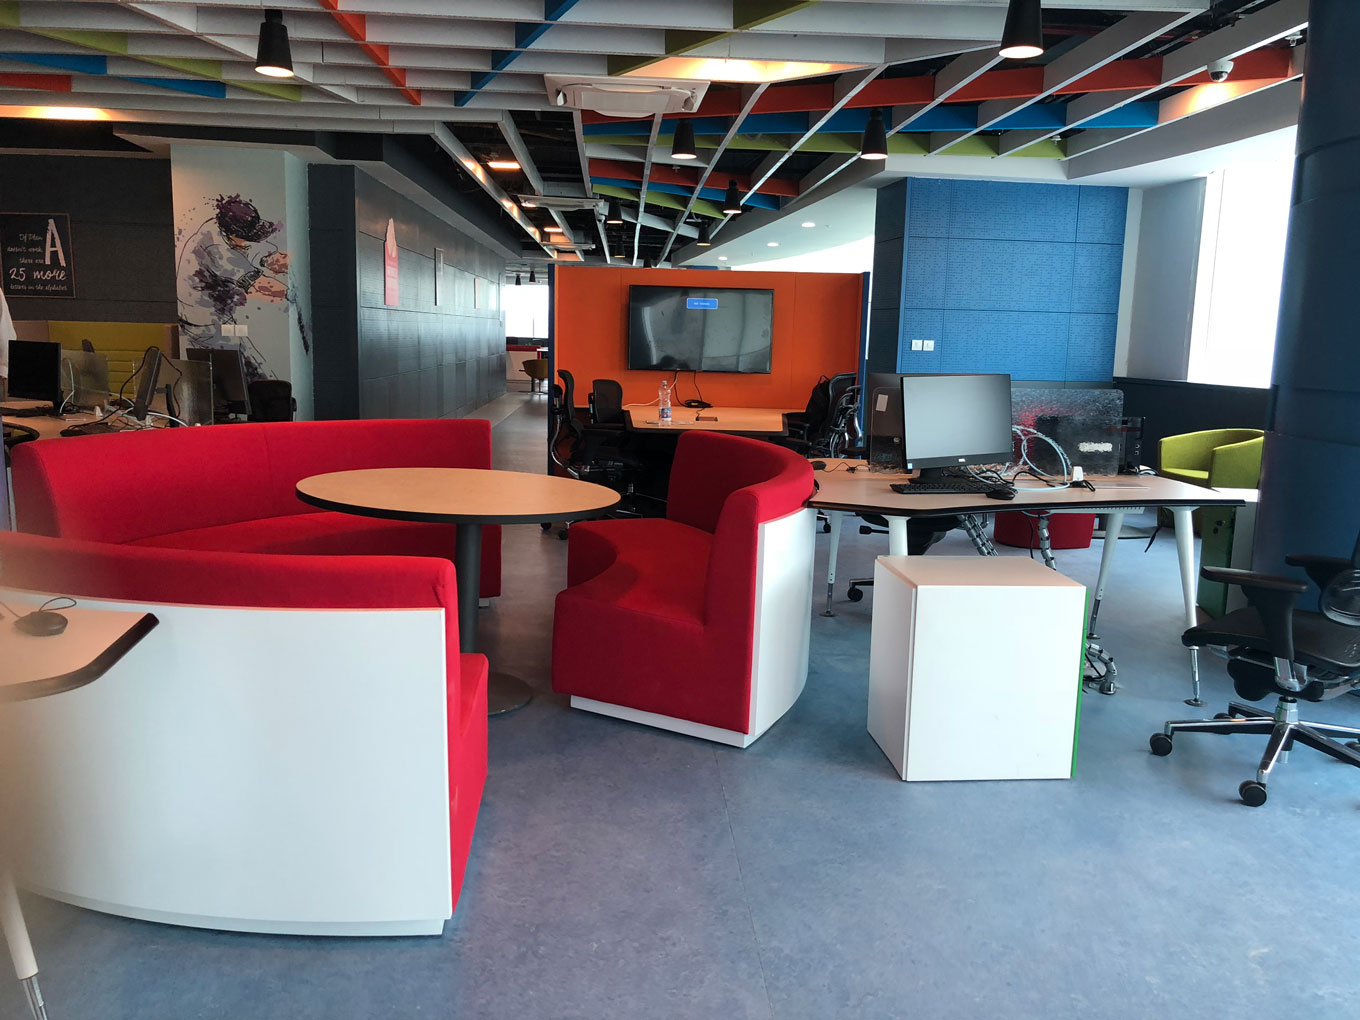 India's Largest Business Incubator Bhamashah Techno Hub Launched In Jaipur, And Its Services Are Free